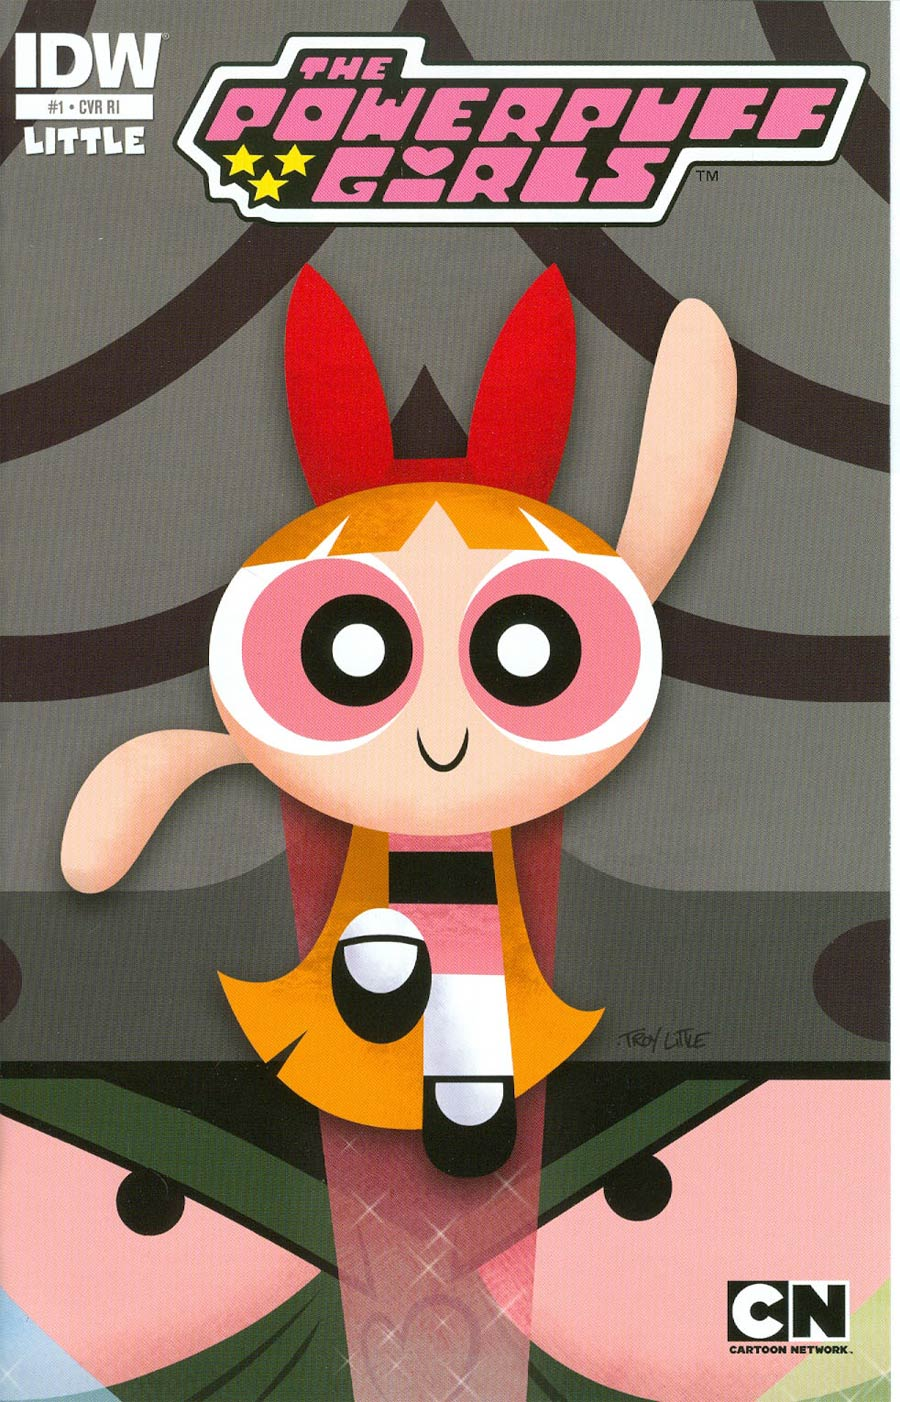 Powerpuff Girls Vol 2 #1 Cover F Incentive Troy Little Gatefold Variant Cover